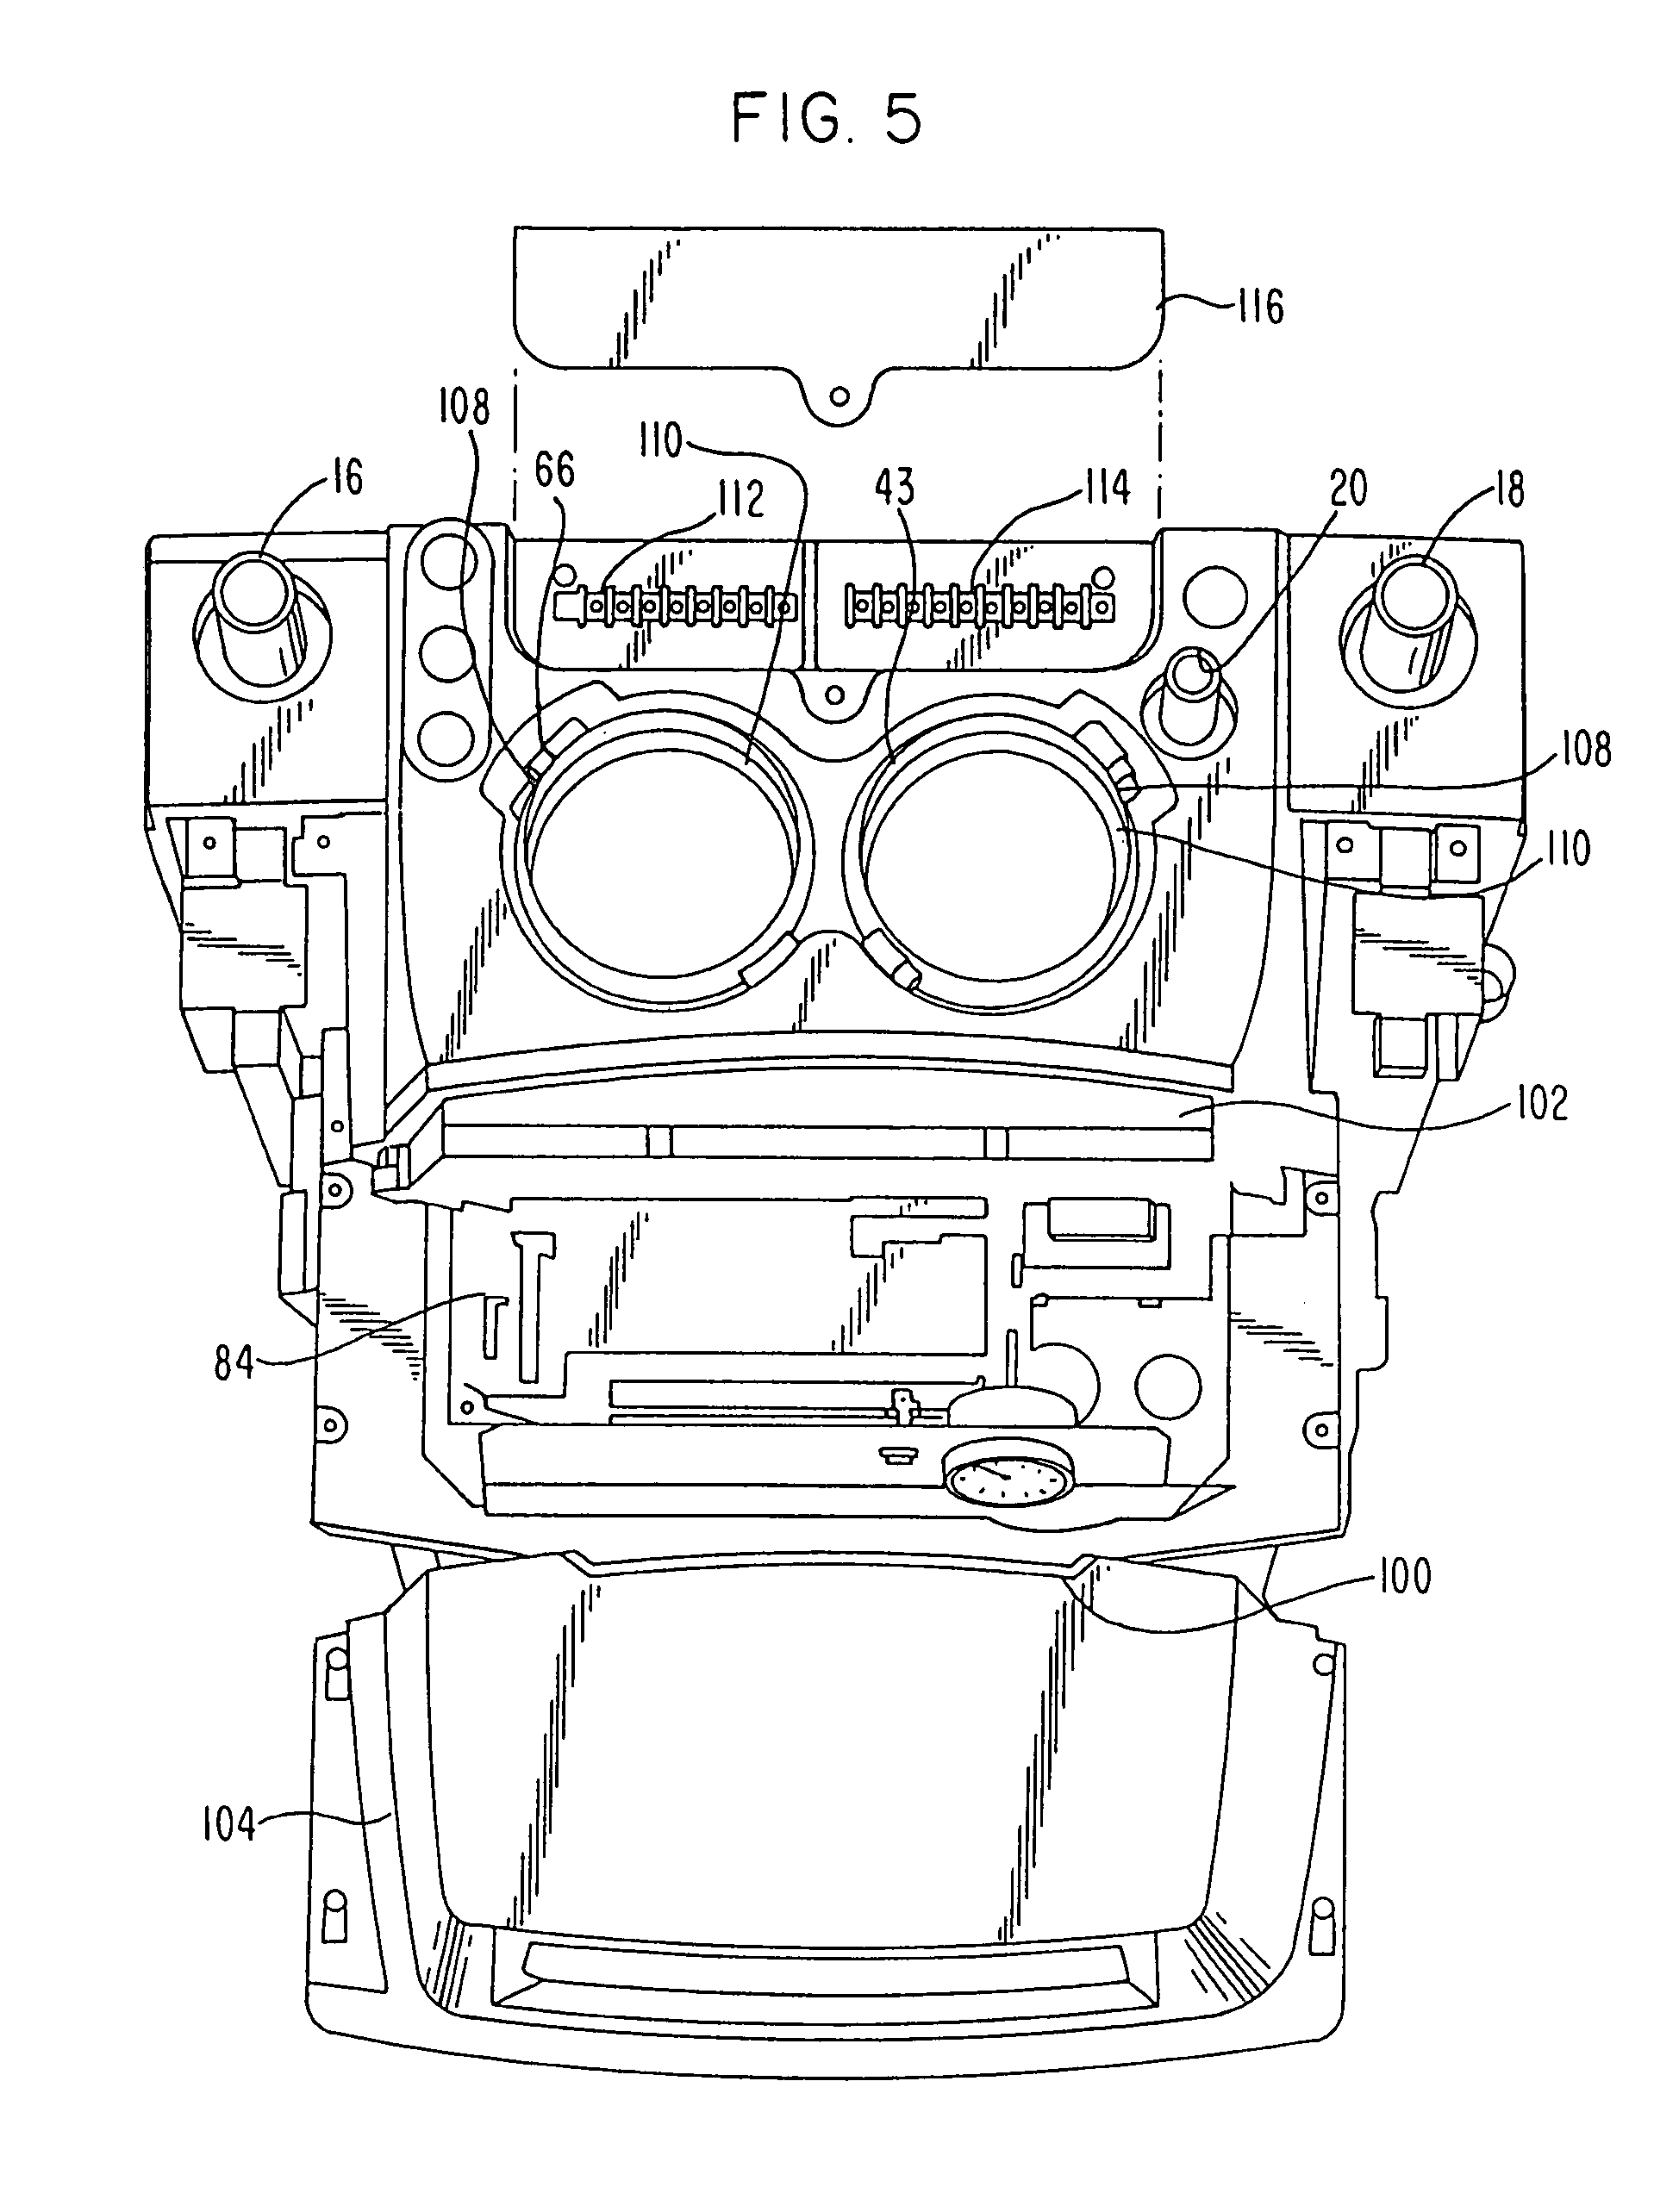 Patent Us7097210 Method And Apparatus For Providing A